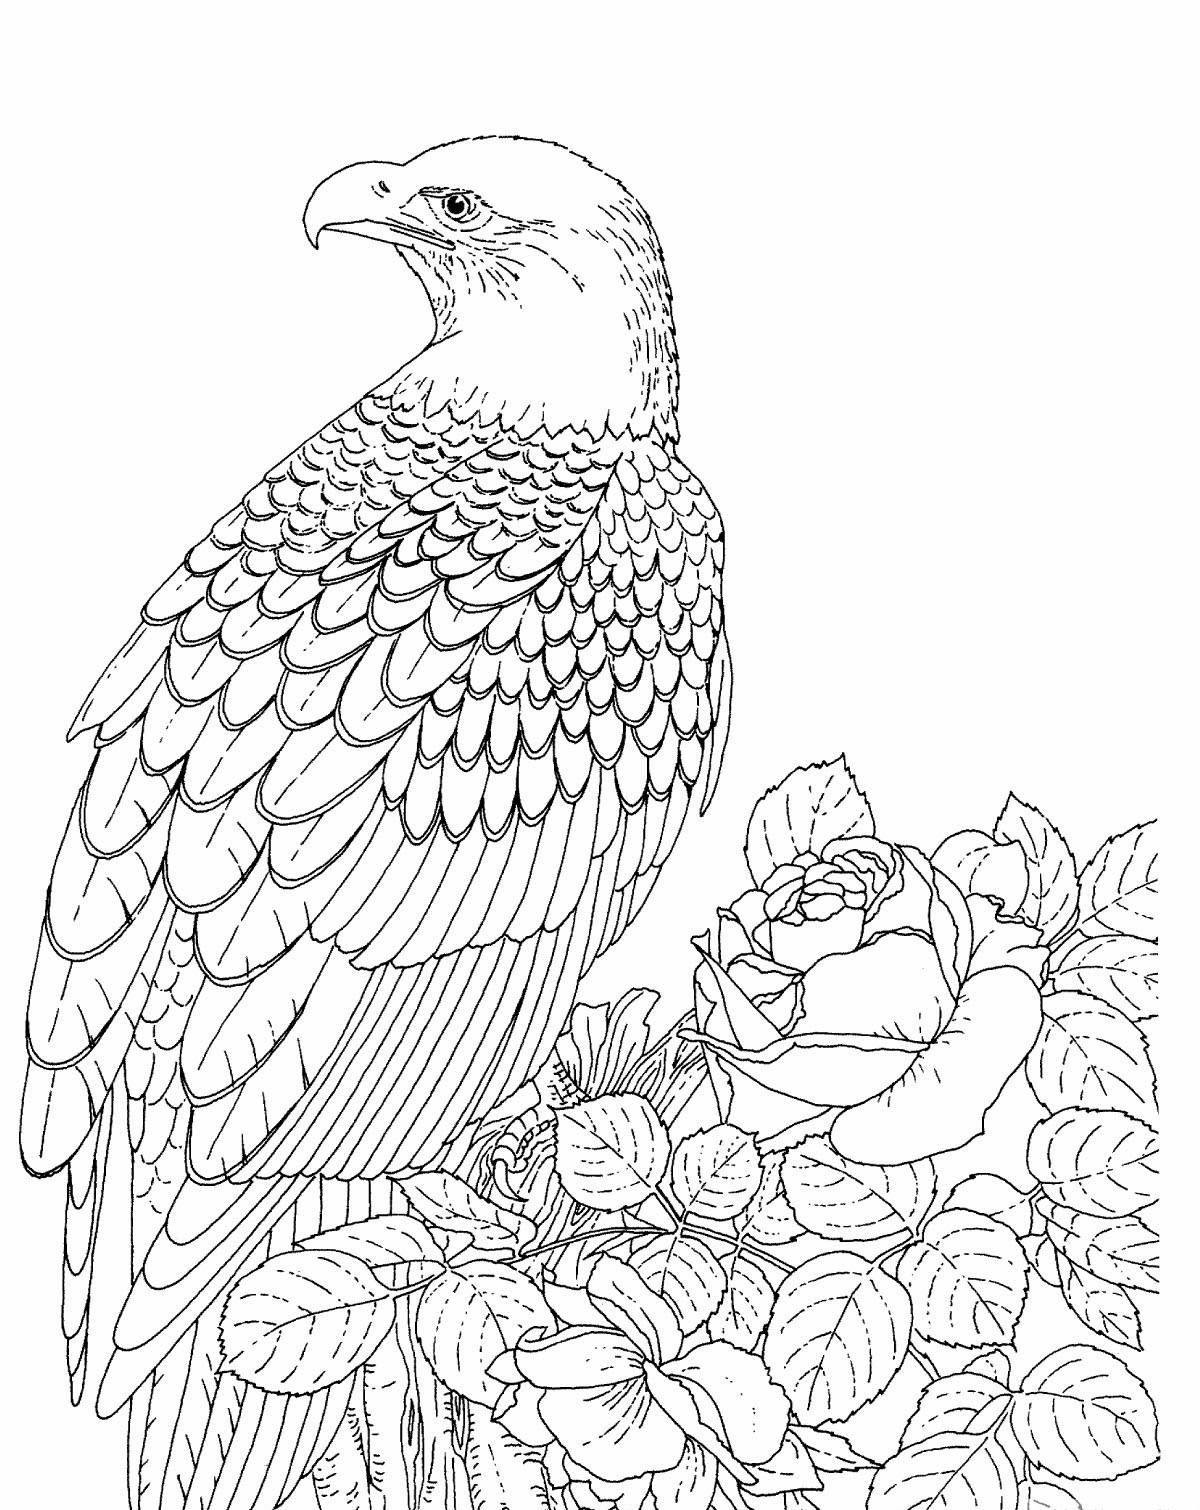 bald eagle coloring pictures eagle coloring pages kidsuki bald pictures coloring eagle